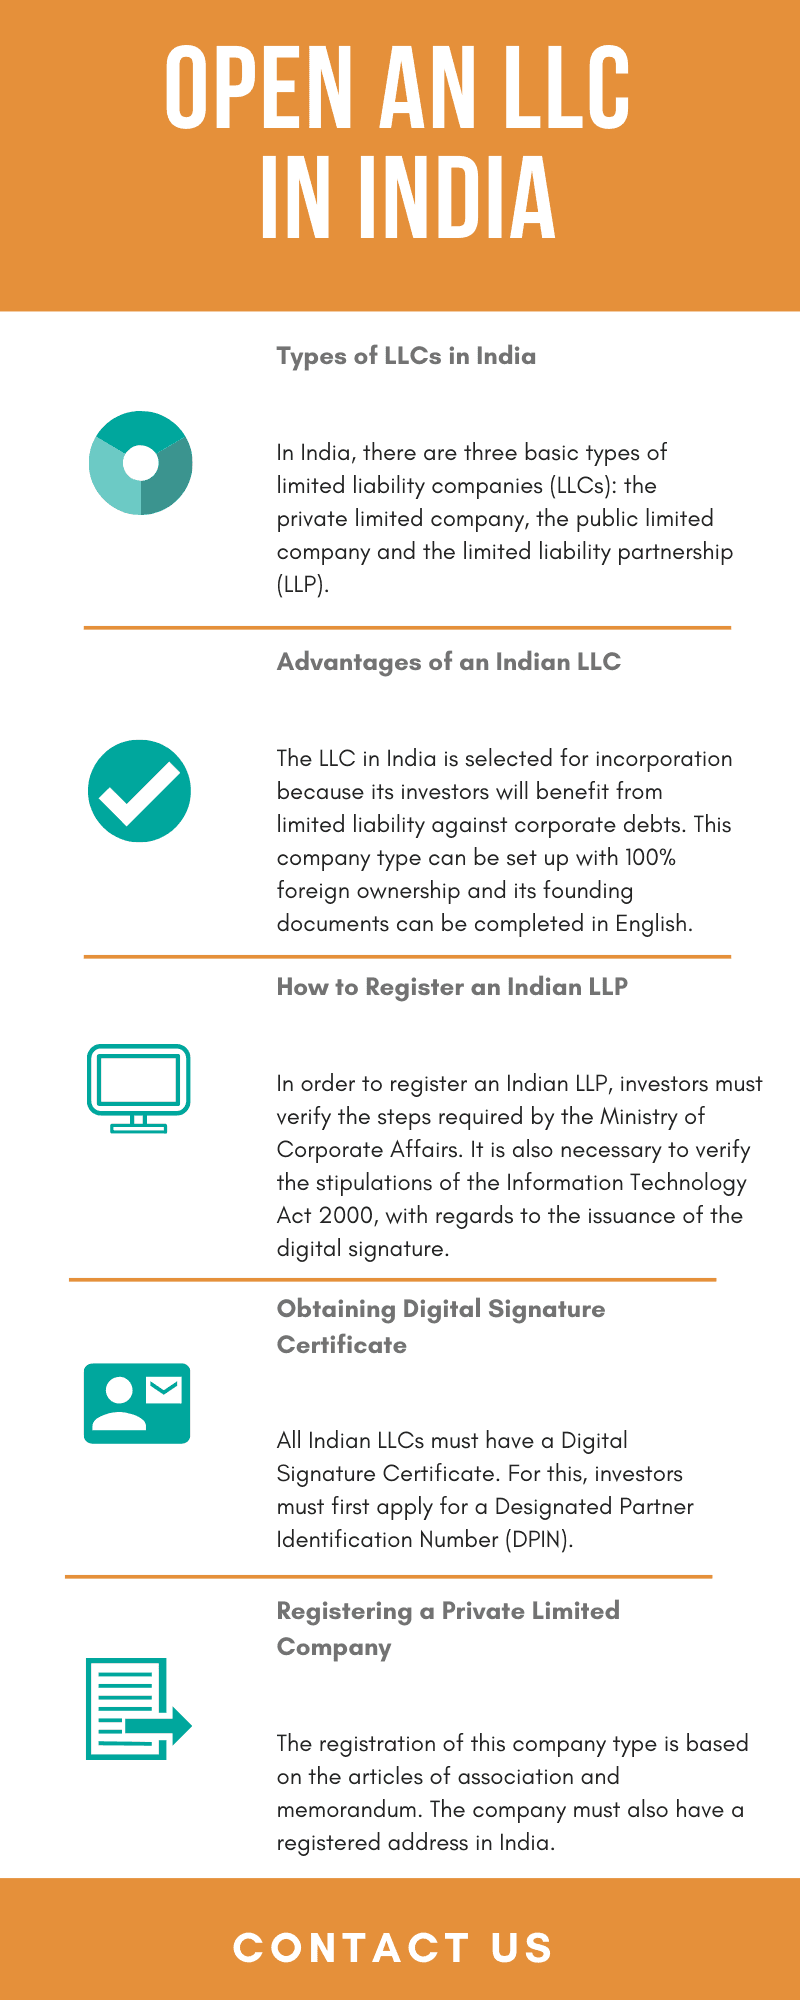 Open an LLC in India